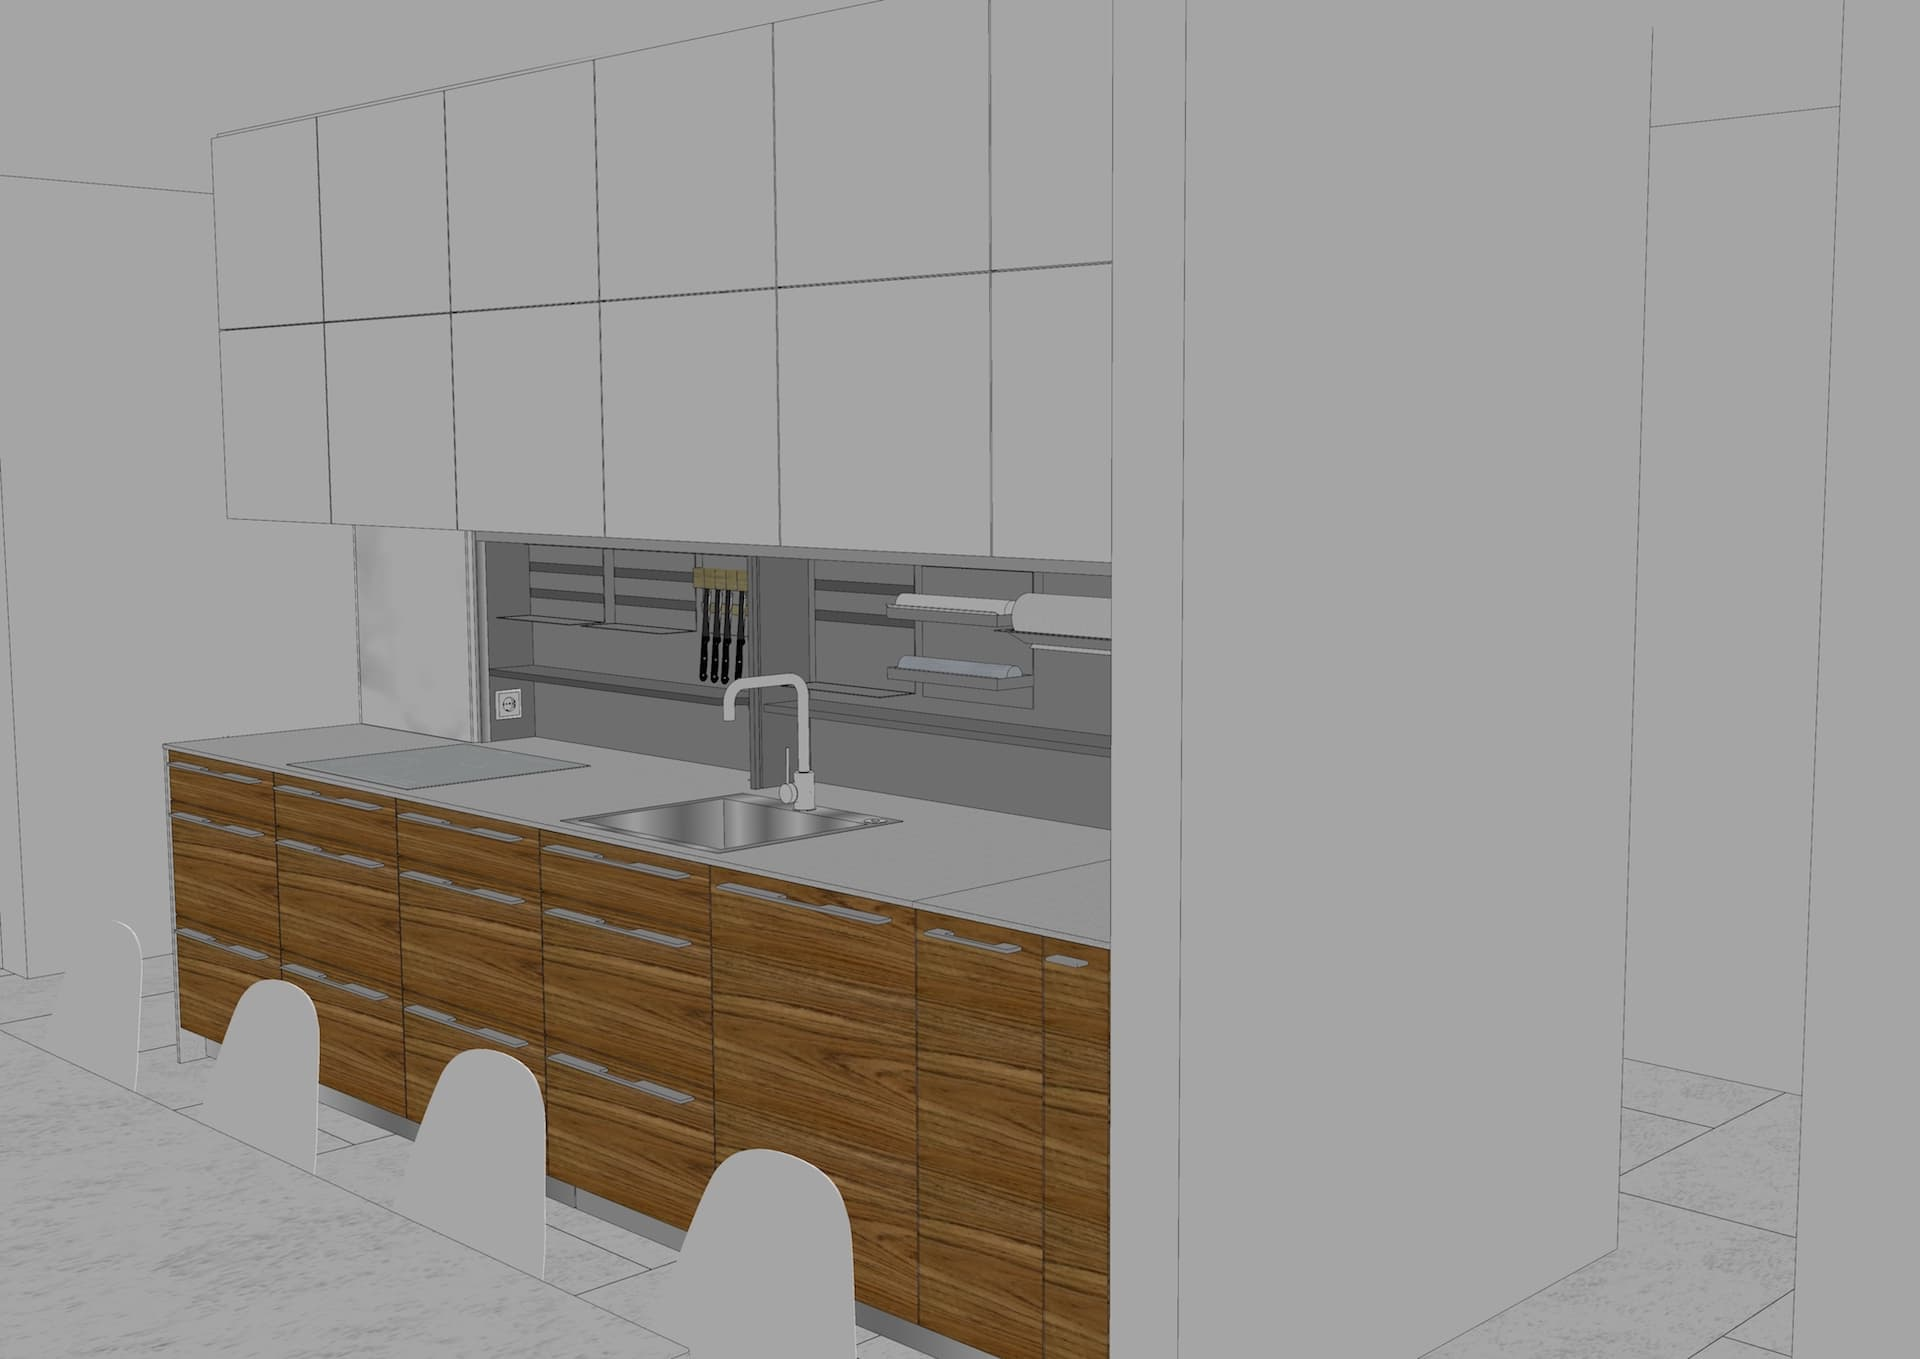 Kitchen furniture in 3d drawing